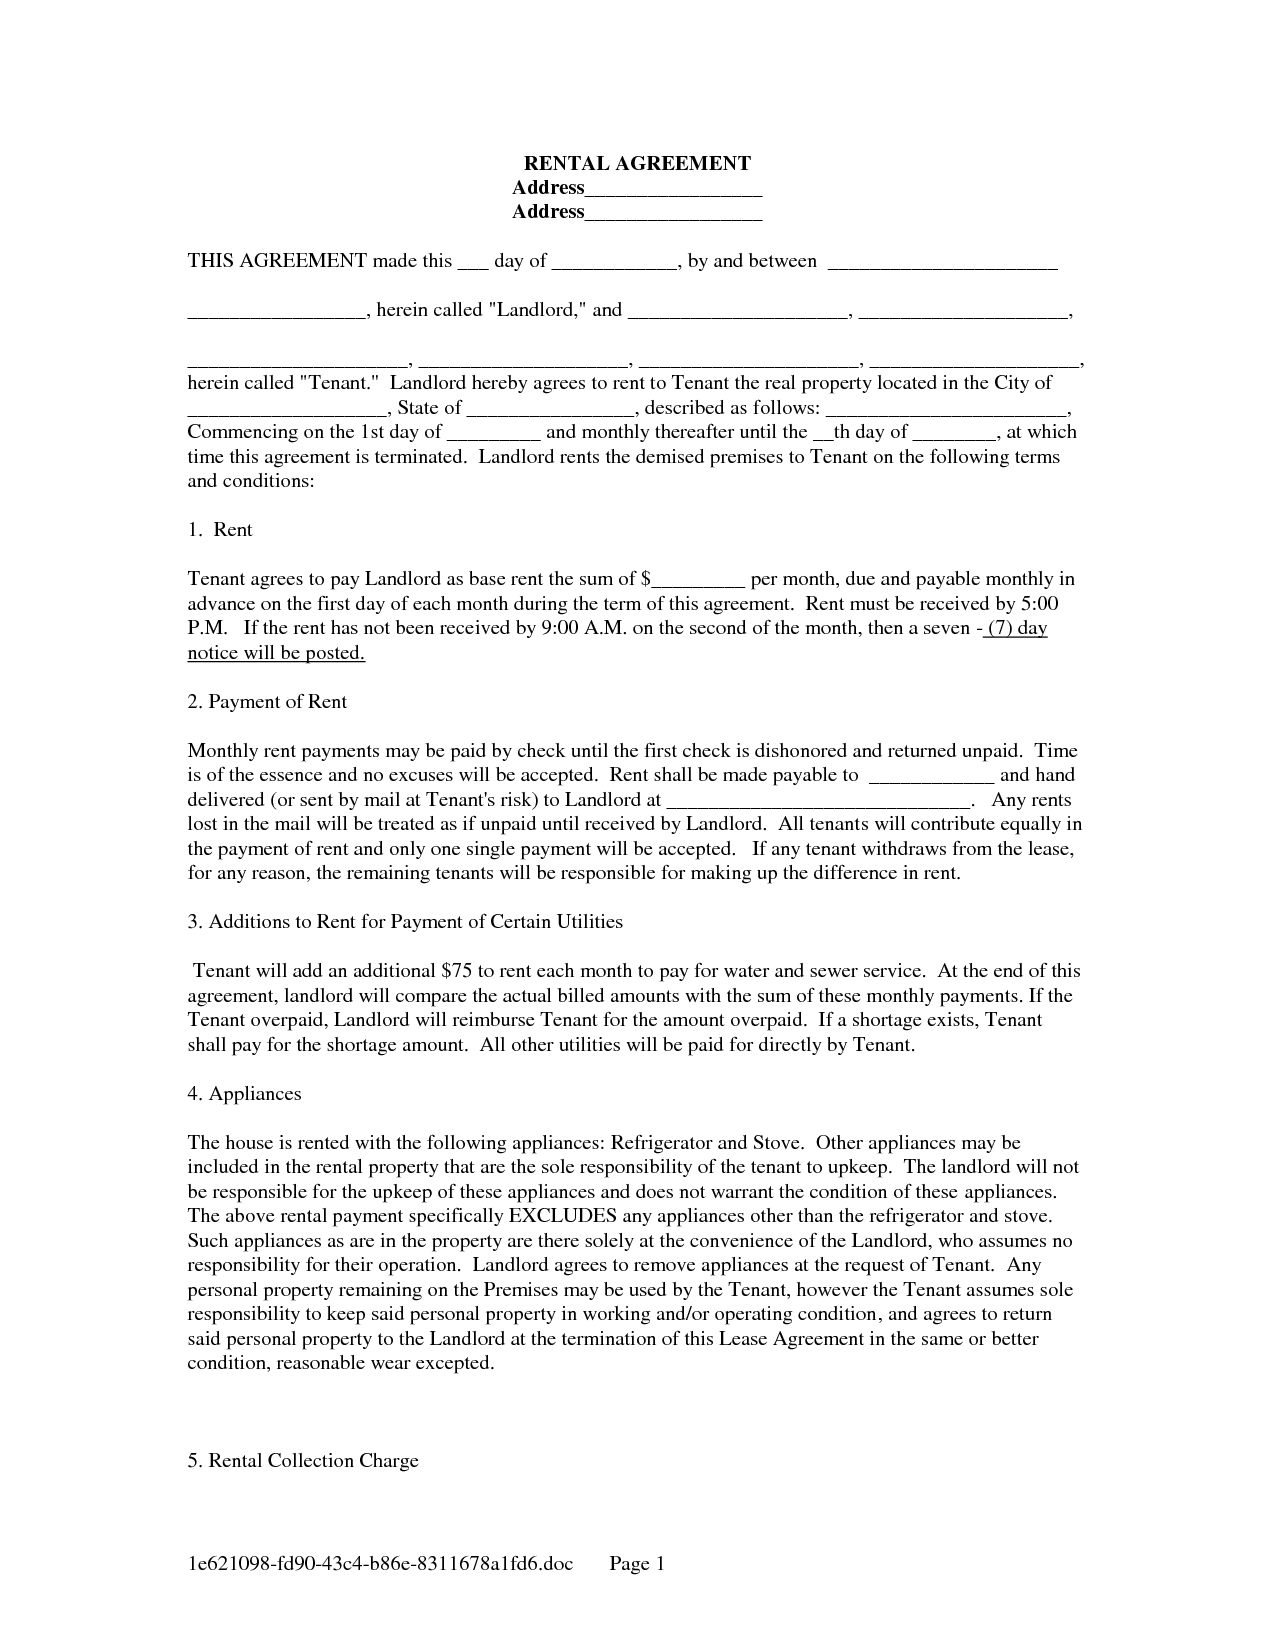 Lease Agreement Form Free | Free Landlord Tenant Lease Agreement - Blank Lease Agreement Free Printable